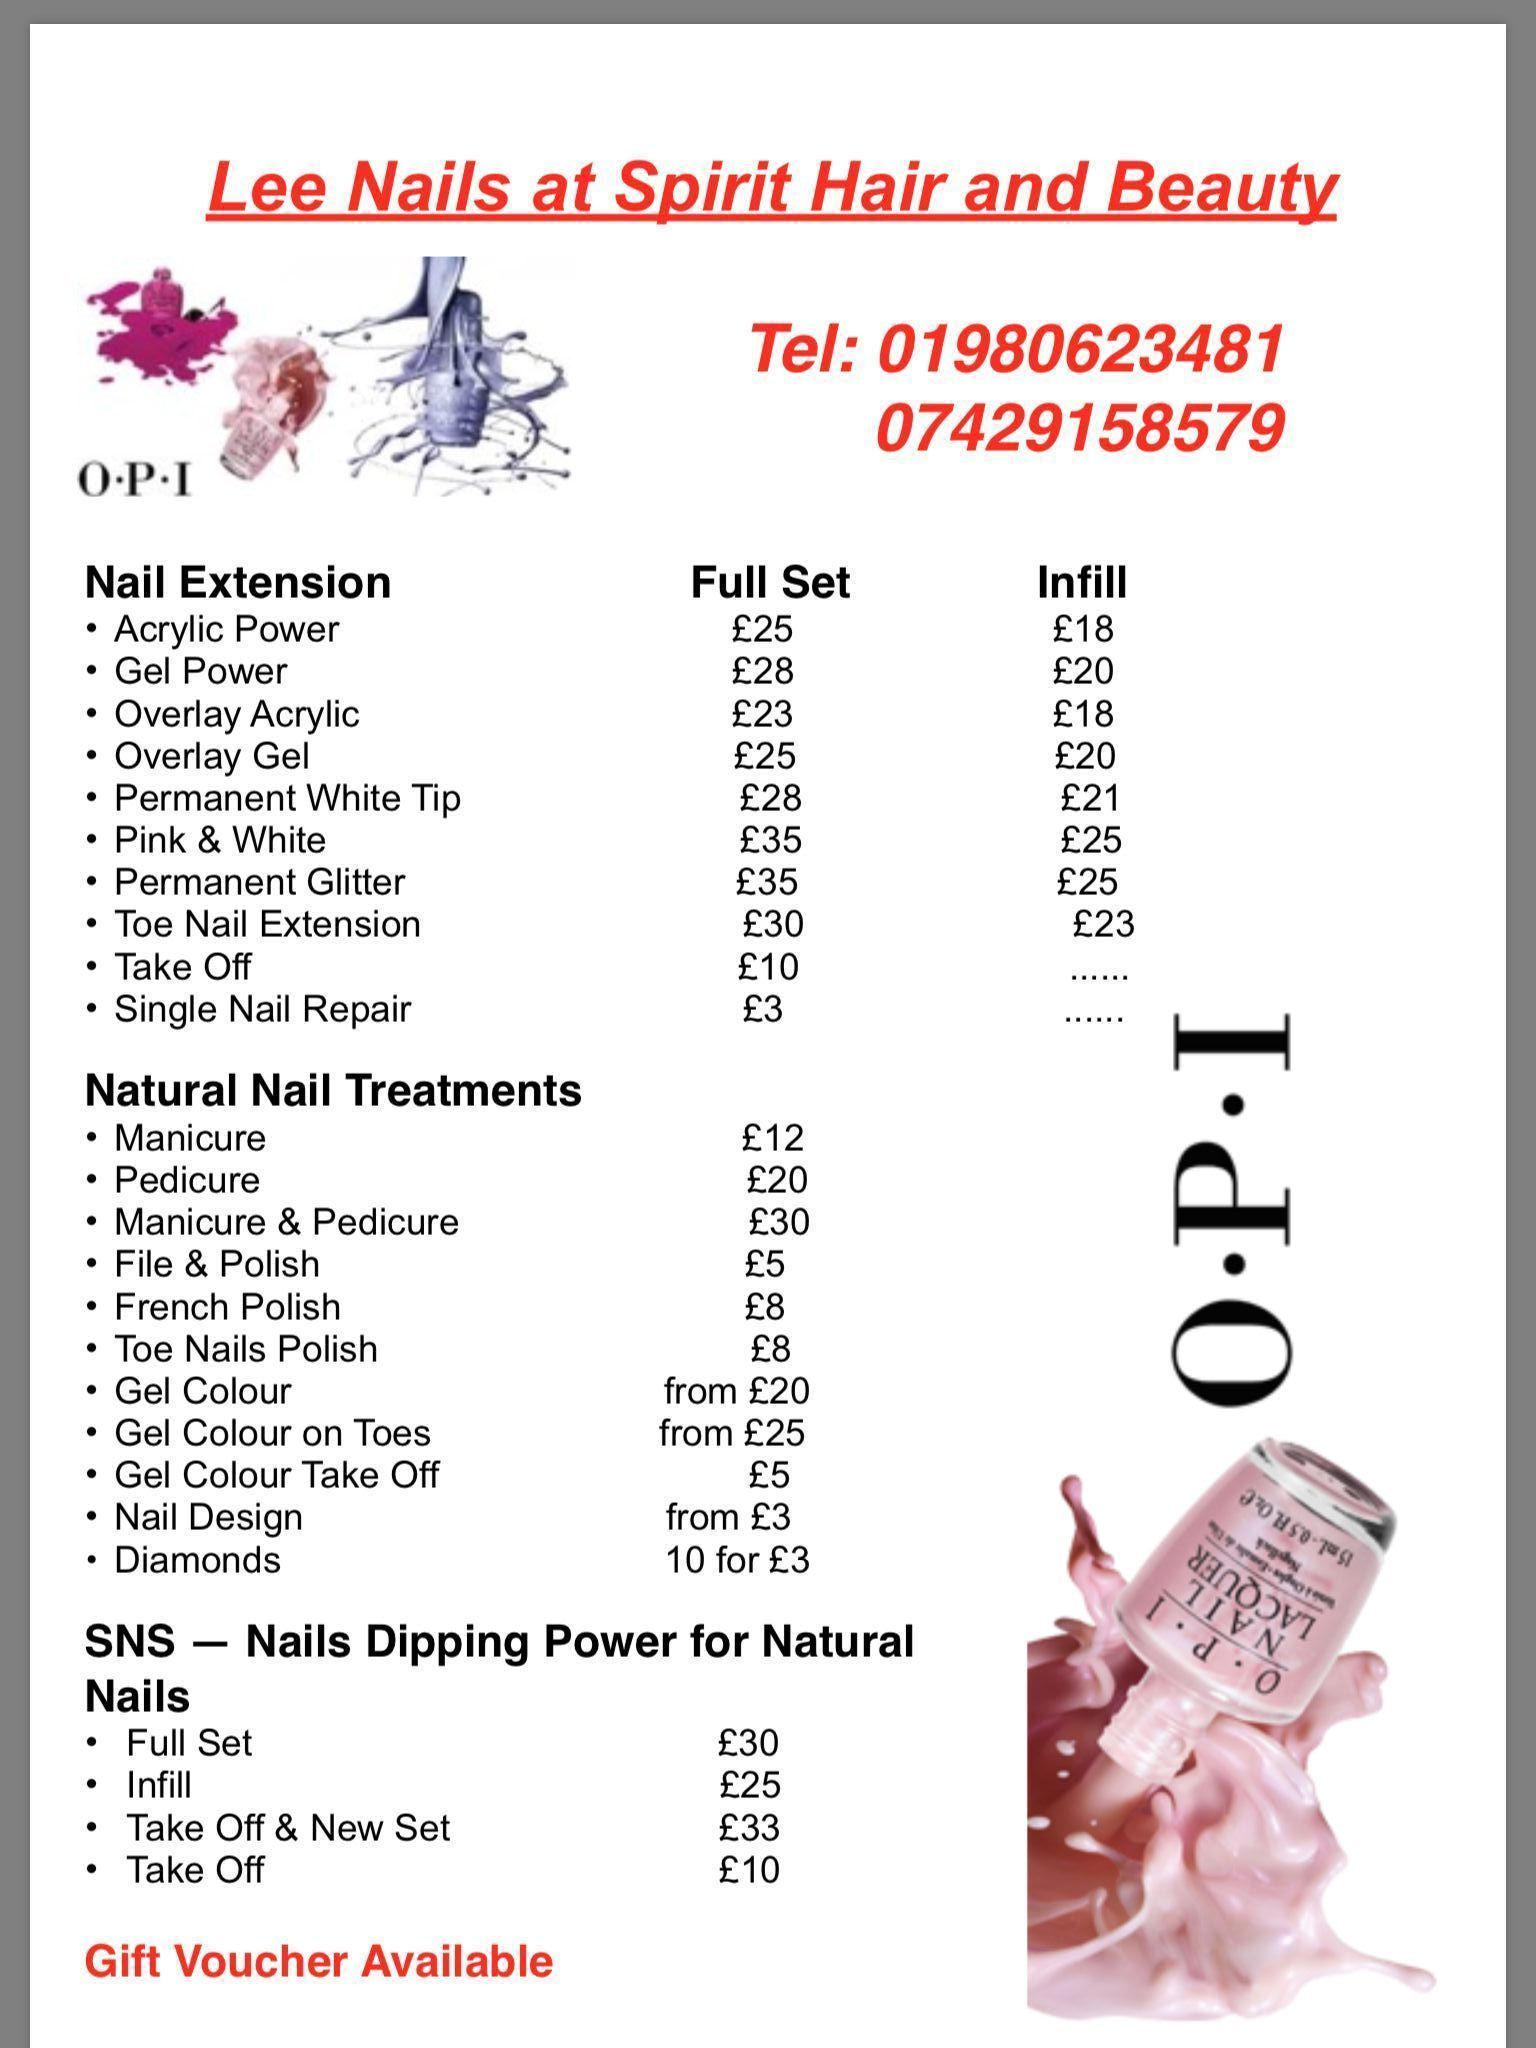 Lee Nails at Spirit Hair and Beauty in Amesbury: address, telephone ...